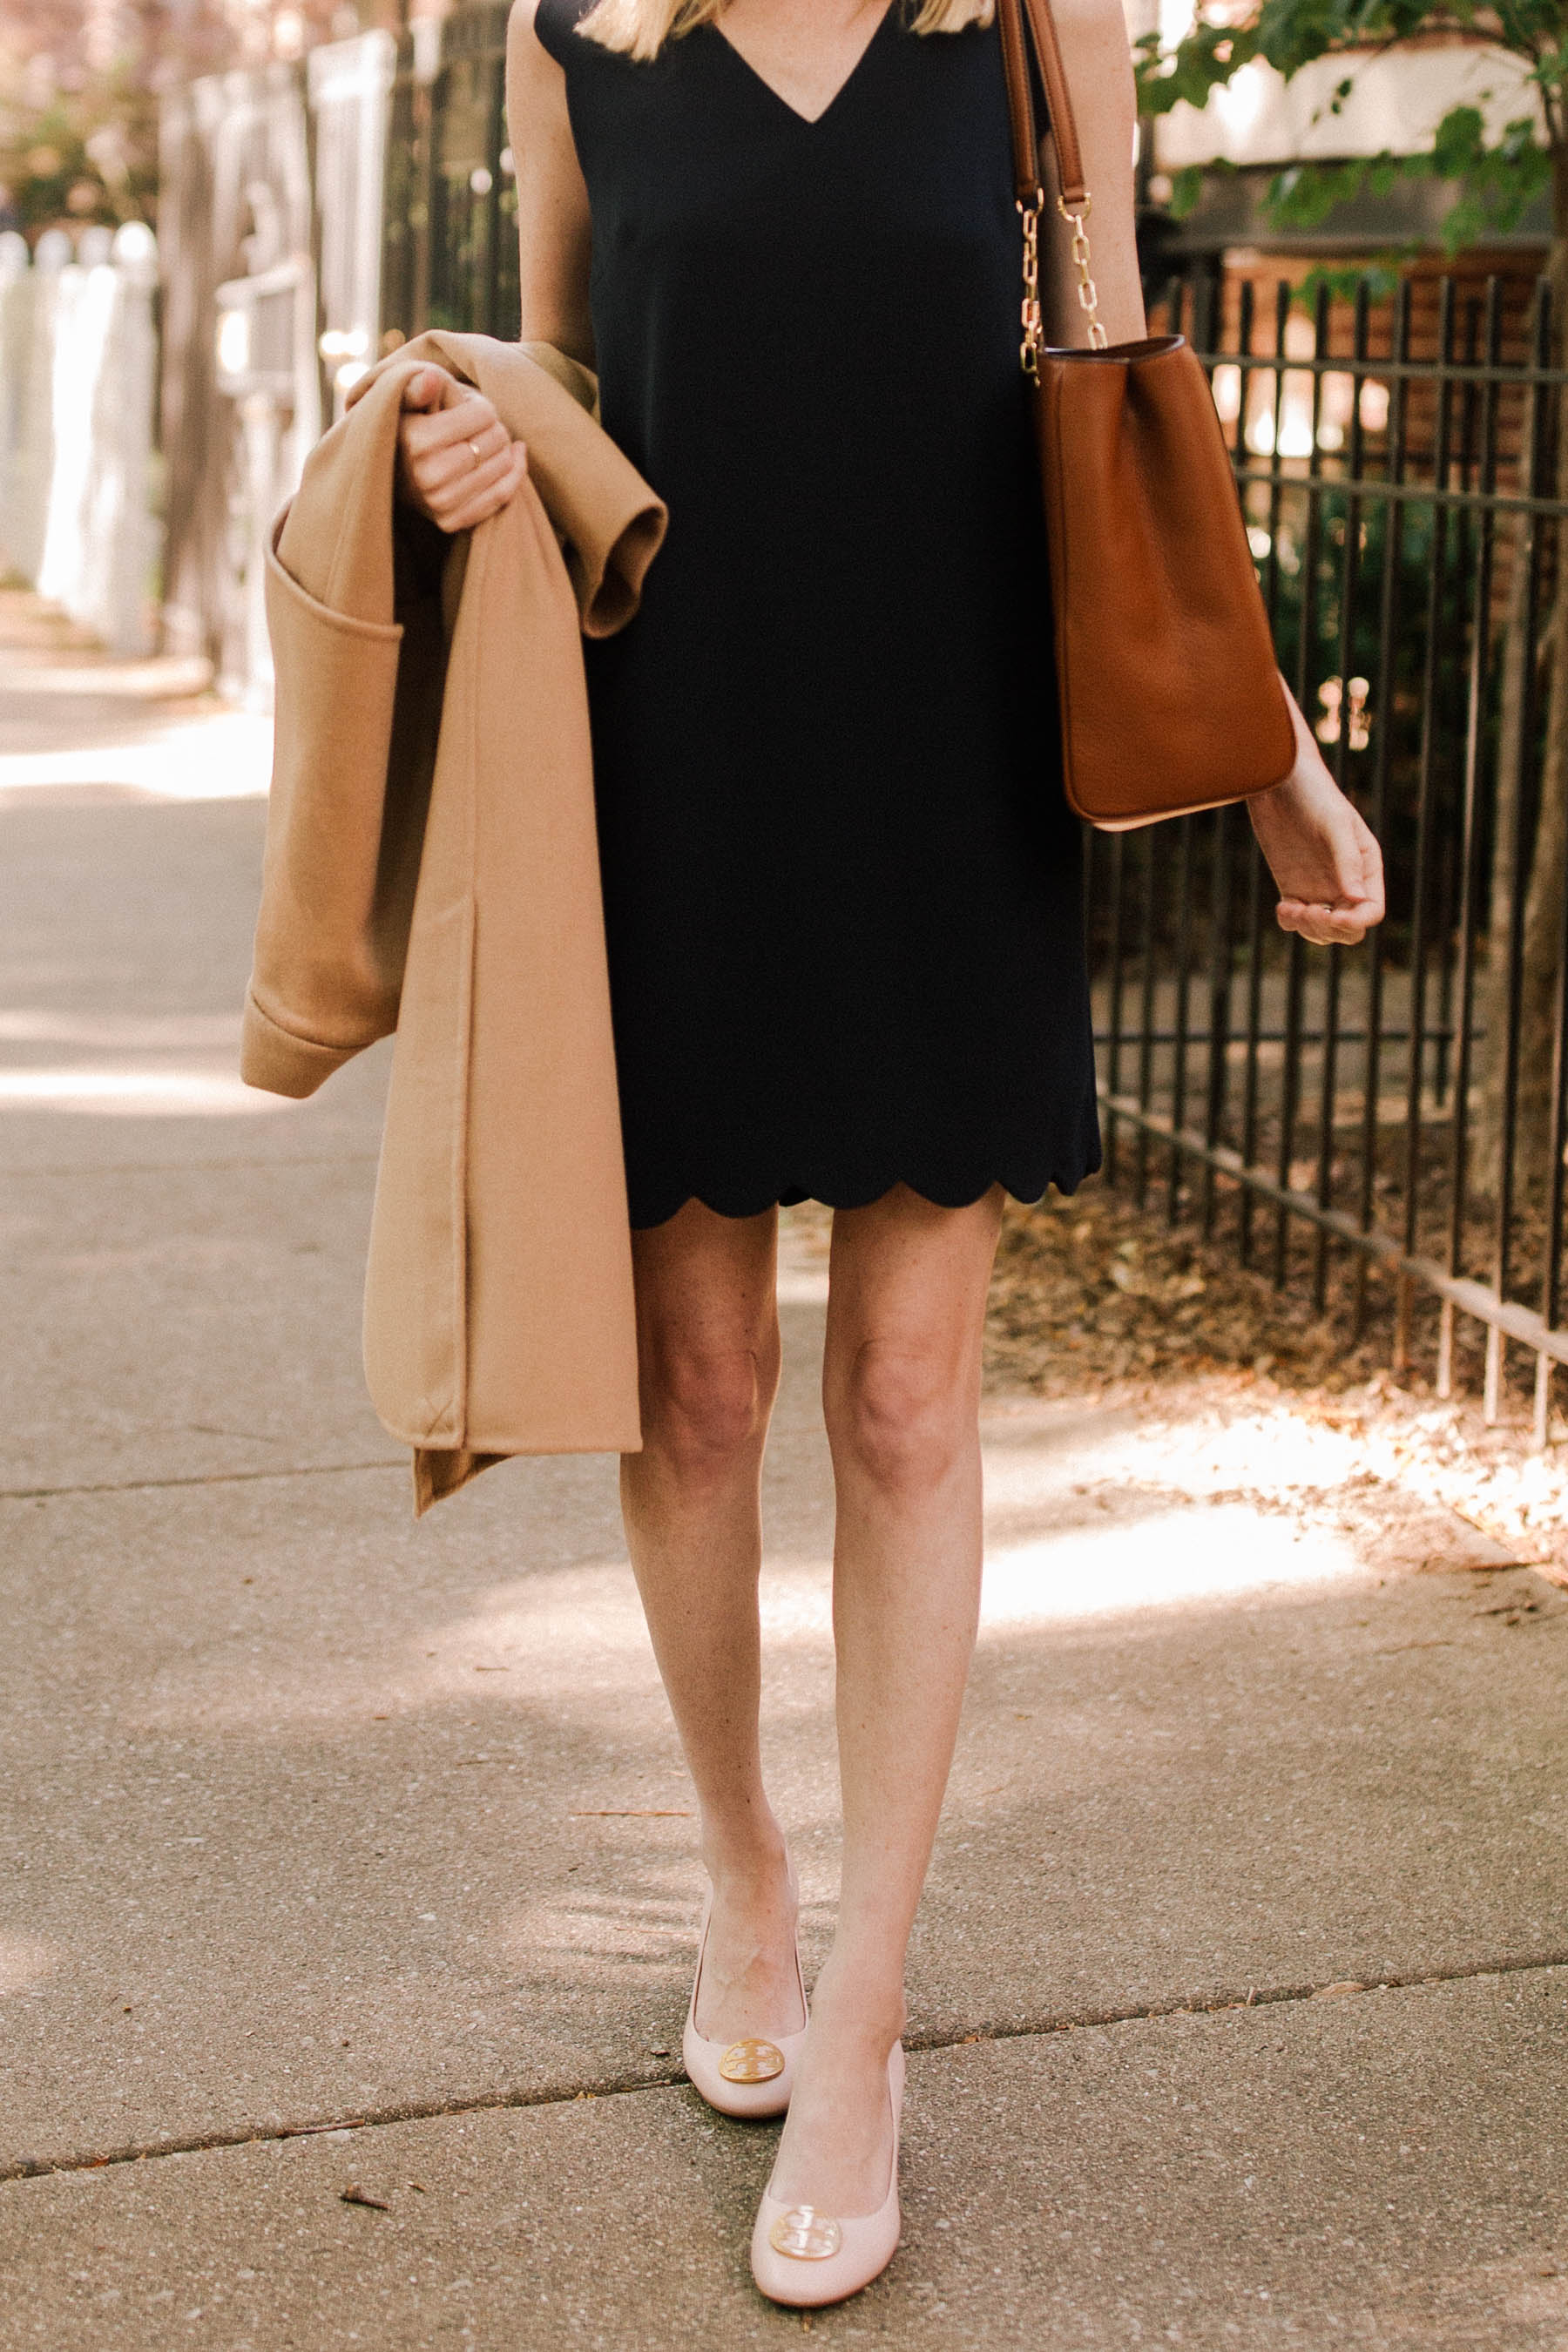 Kenneth Cole Wool Long Camel Coat  / CeCe Scalloped Dress / Tory Burch Benton Pump / Tory Burch Marsden Pebbled Leather Tote